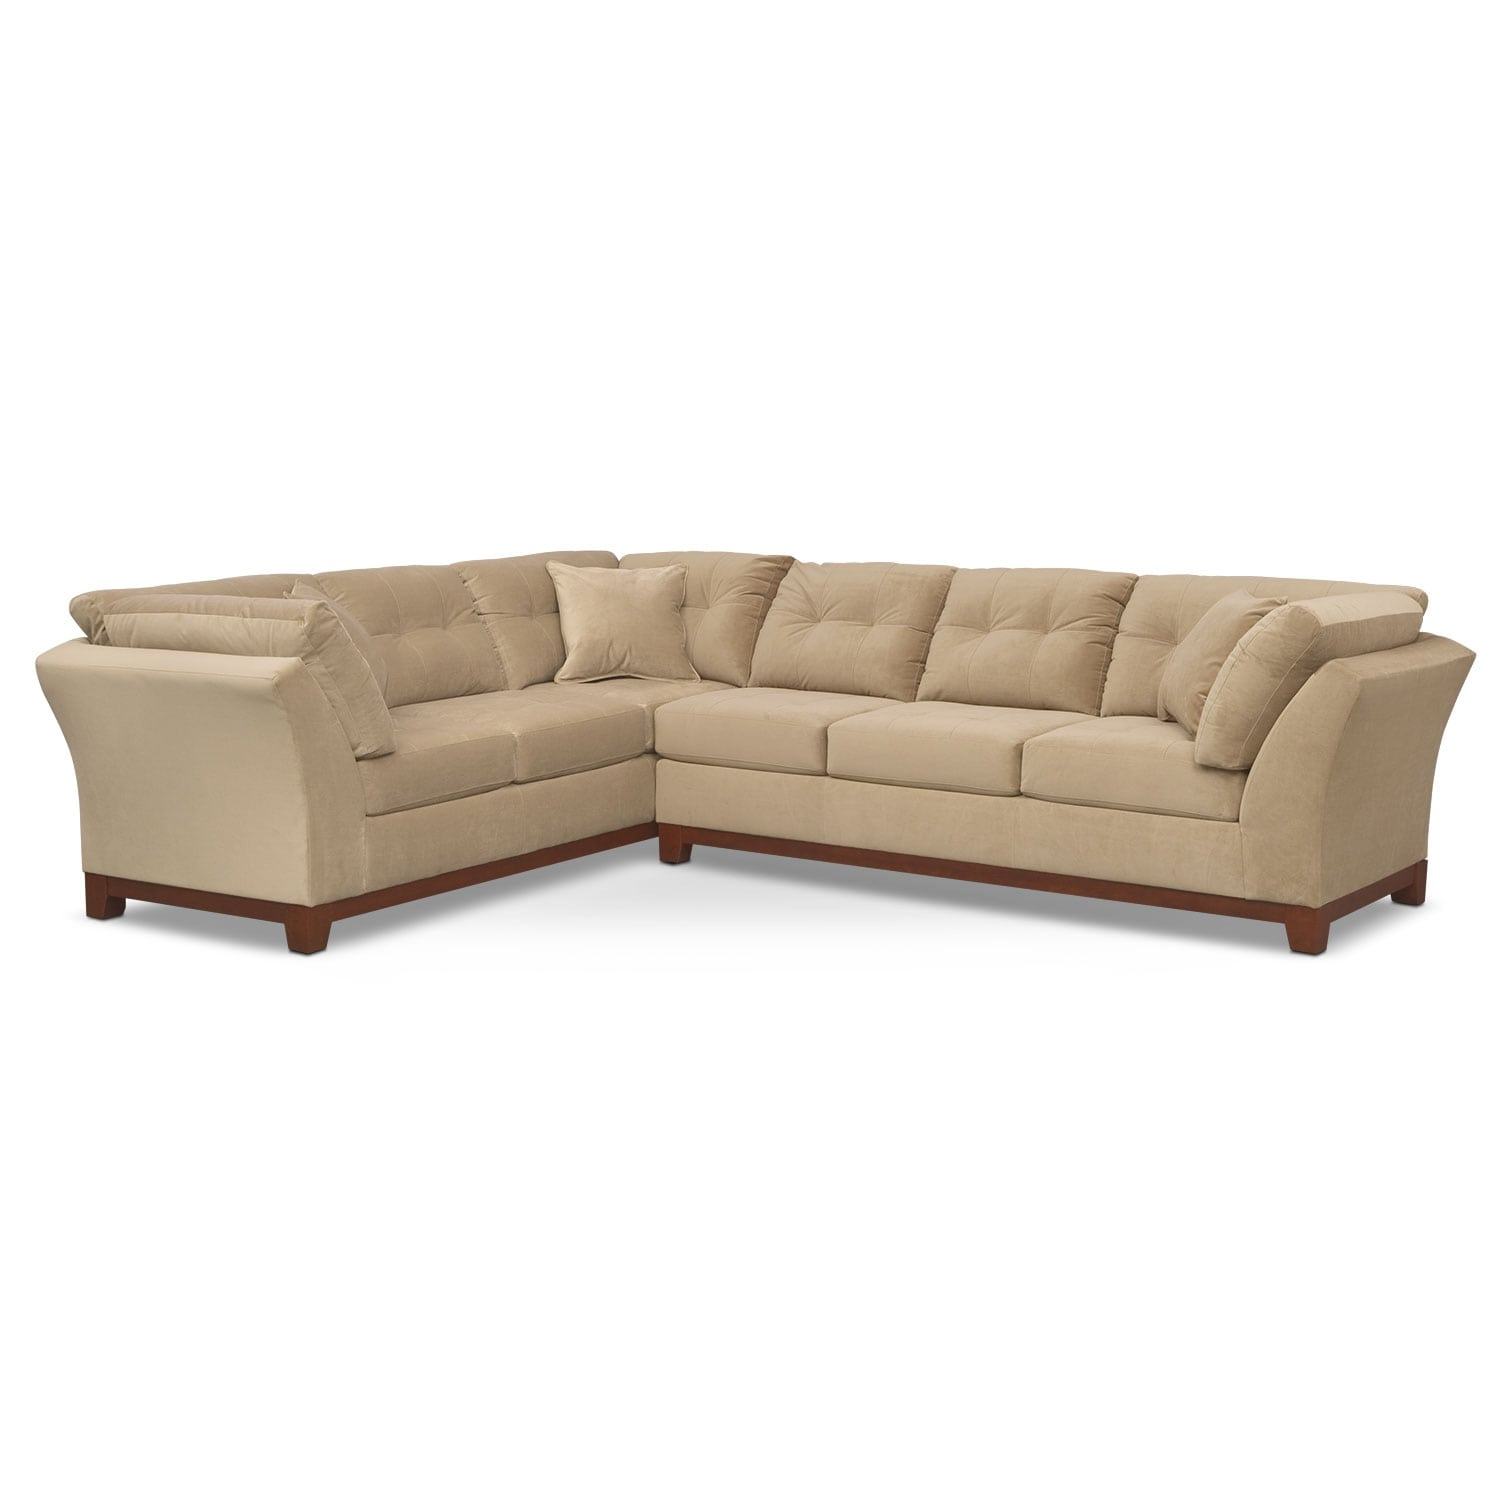 Sebring 2 piece sectional with right facing sofa cocoa for Signature furniture